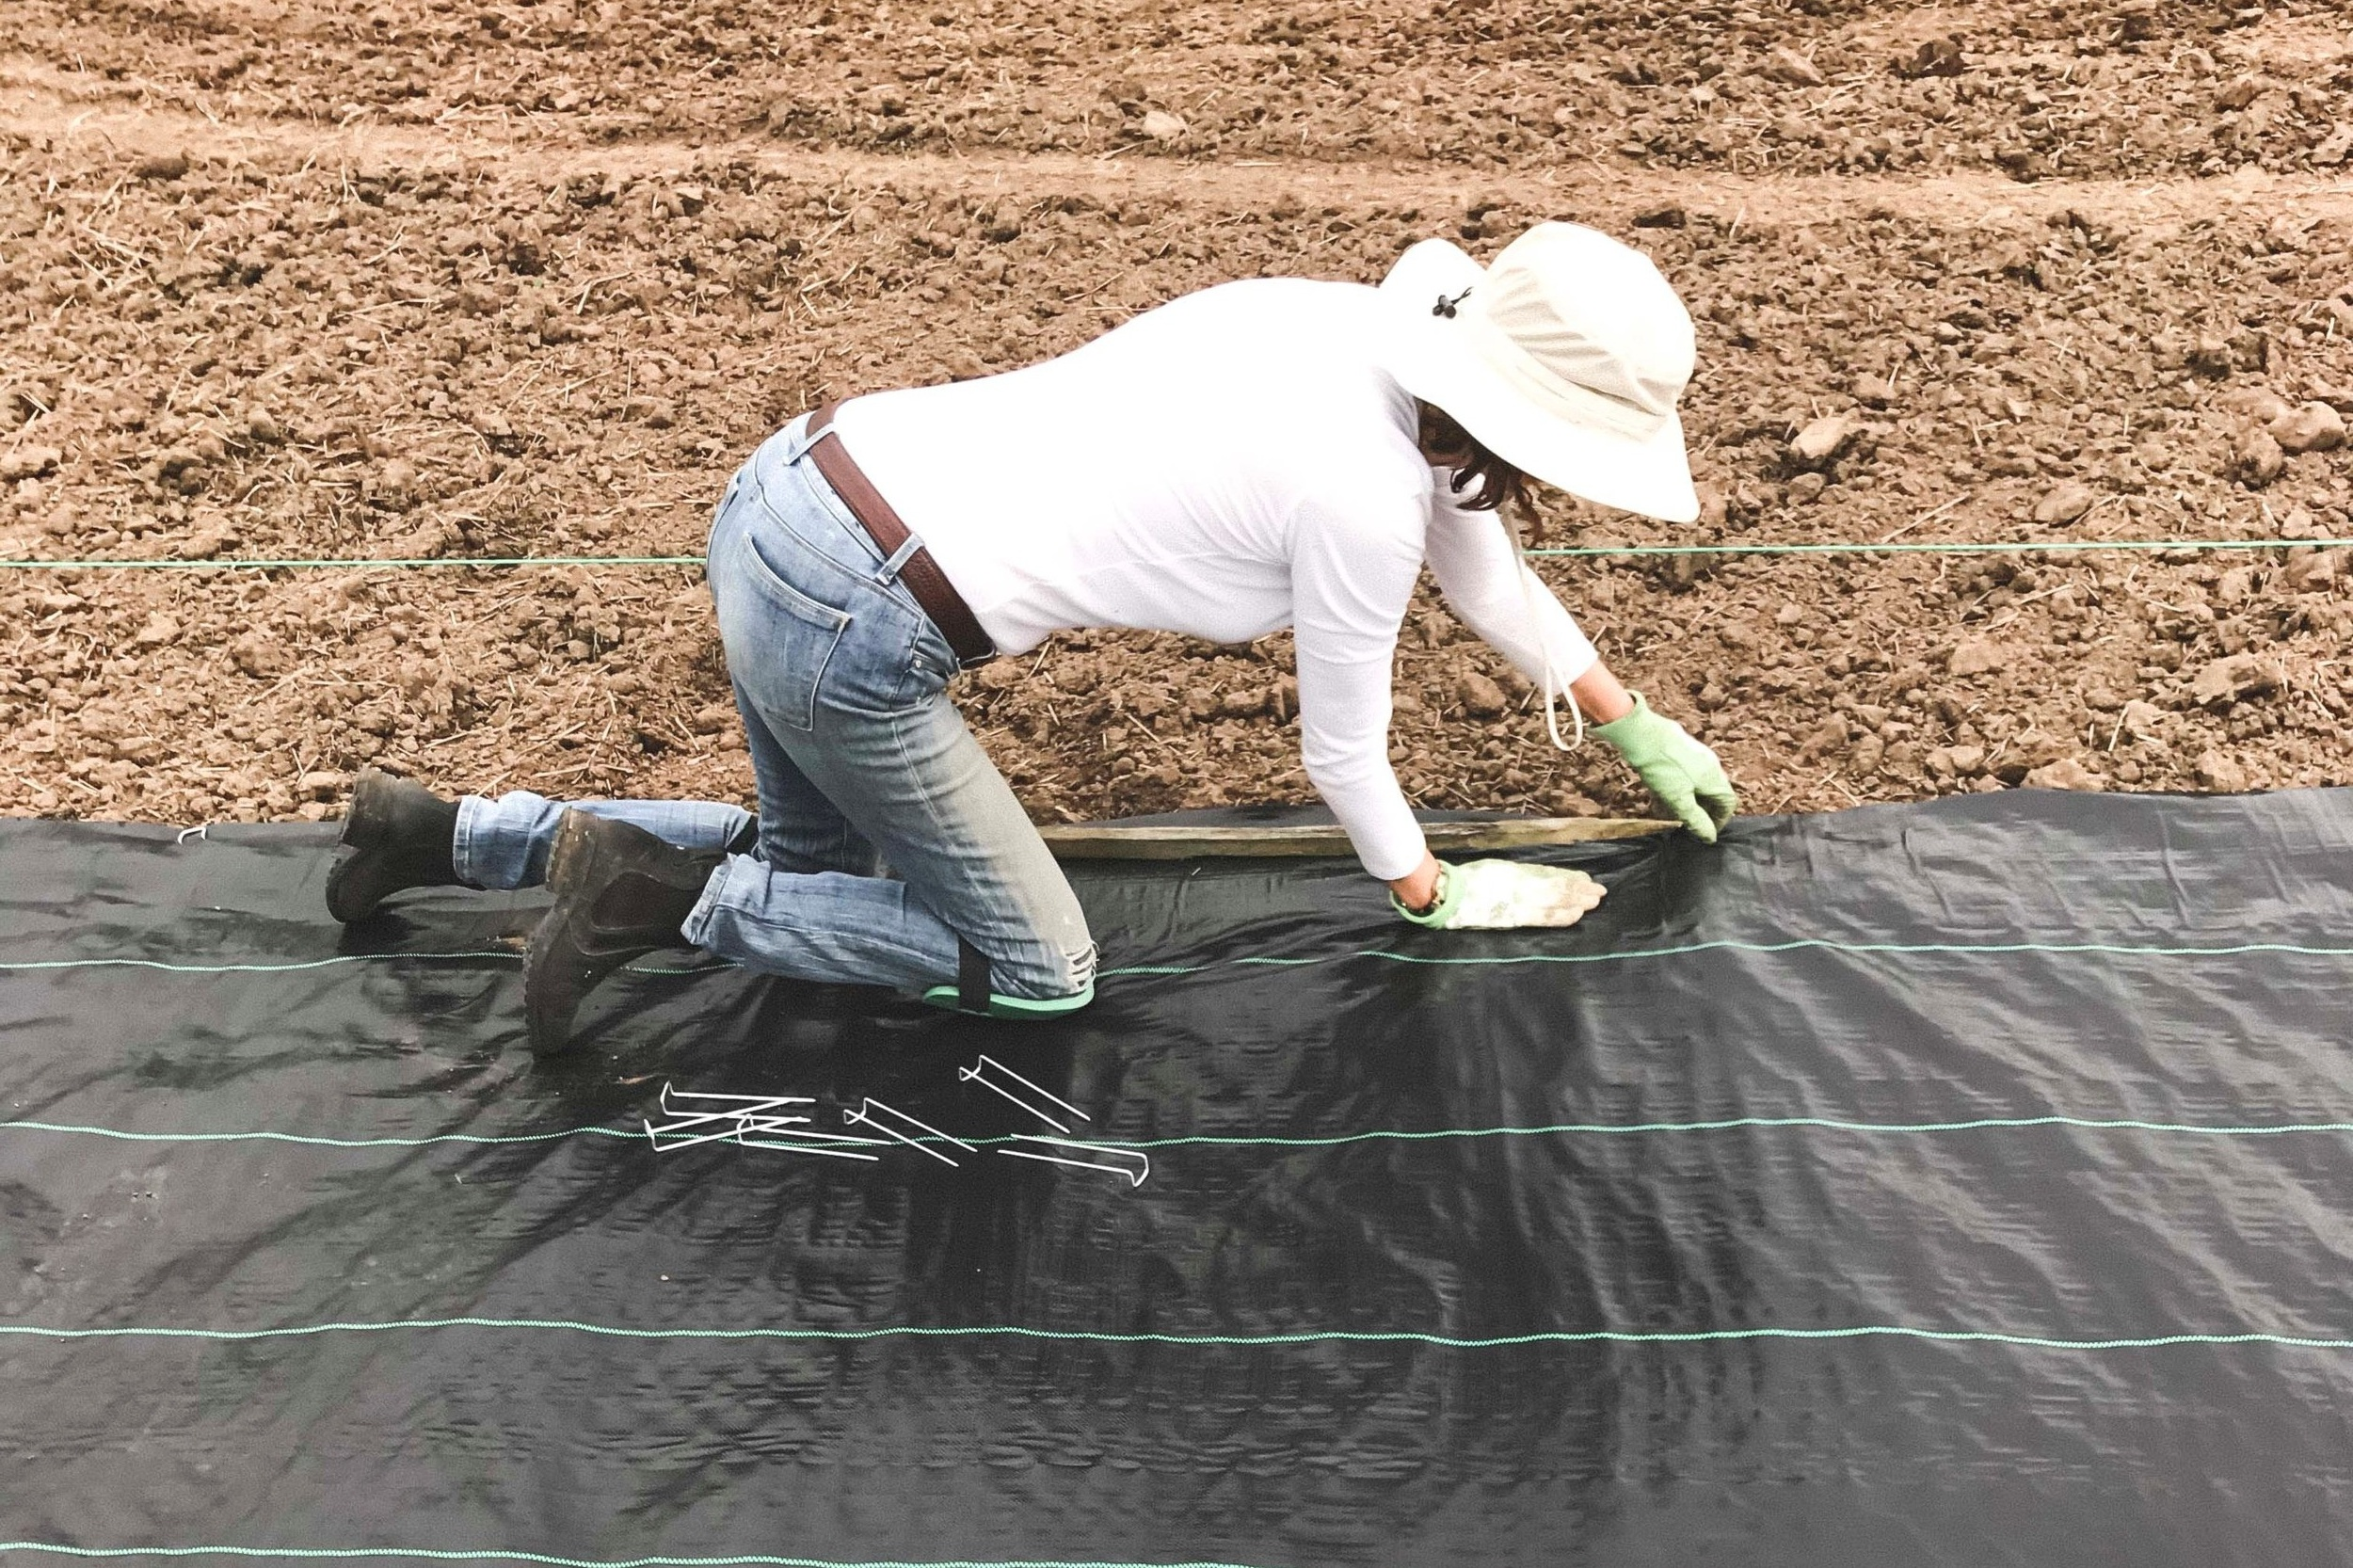 Laying greenhouse cloth - Water and air permeable black woven cloth is laid down to prevent weeds from growing. Of course, the field had to be harrowed first and all the rocks hand picked out!